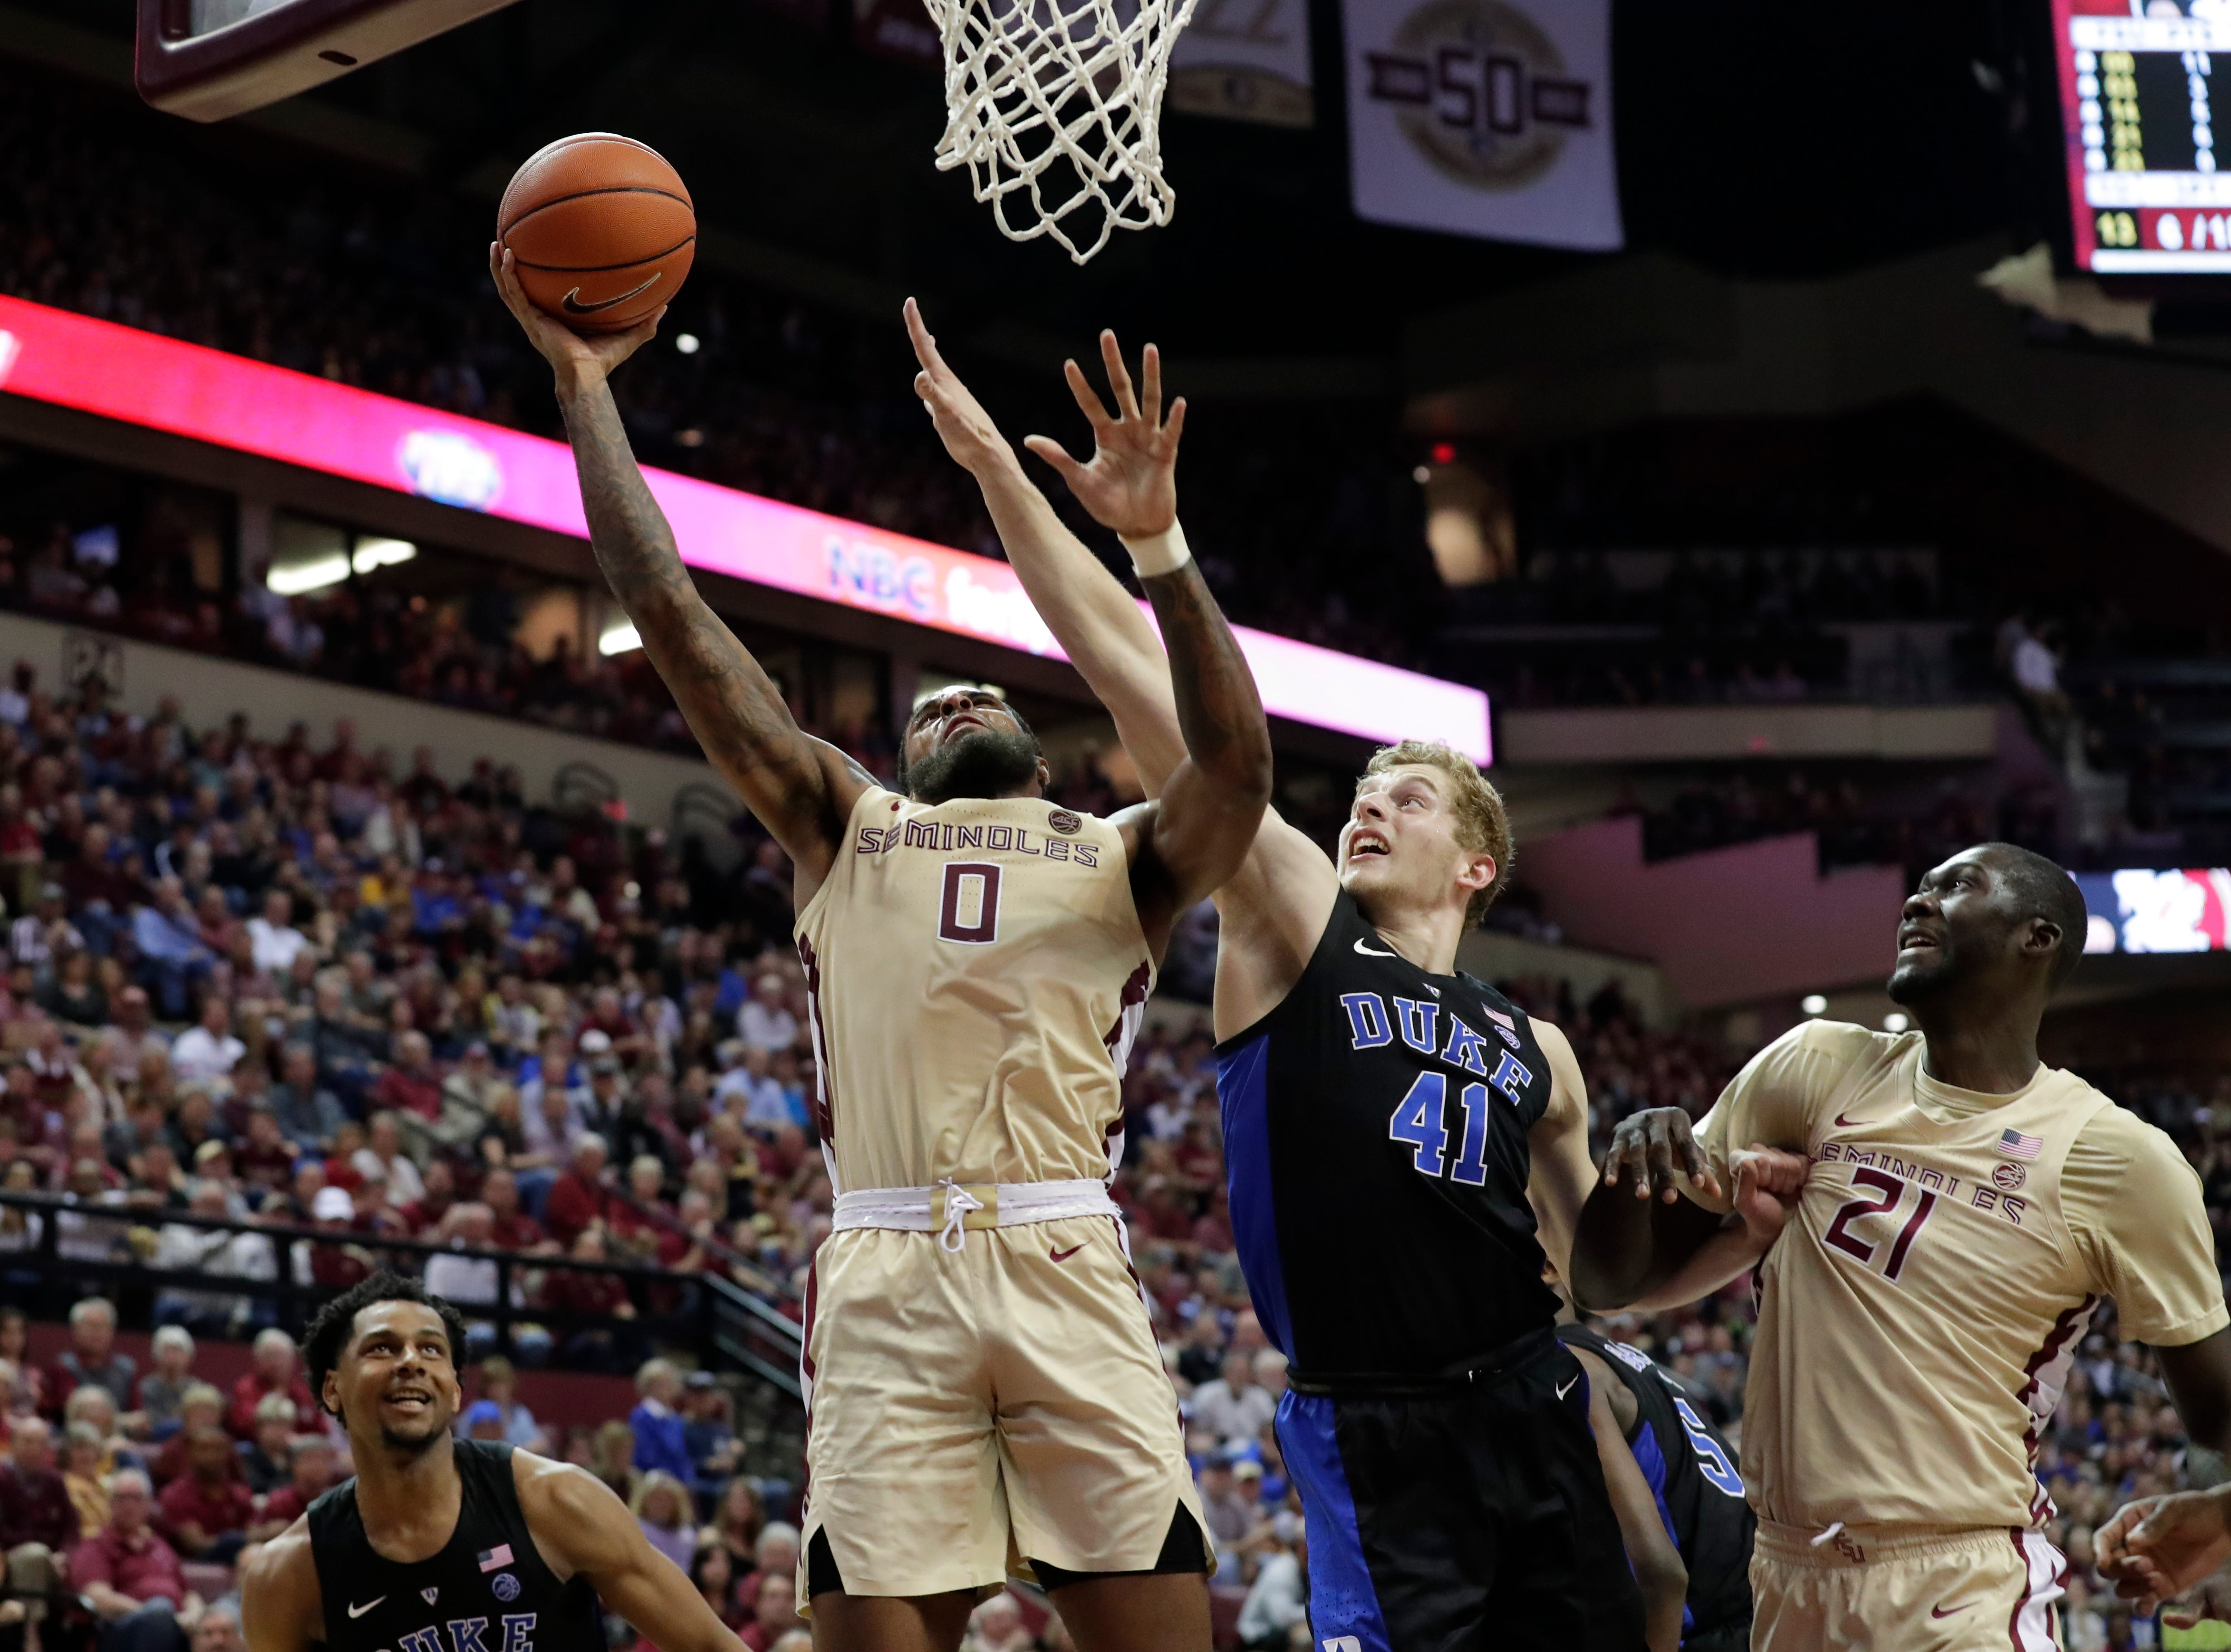 Florida State Seminoles forward Phil Cofer (0) goes in for a layup while Duke Blue Devils forward Jack White (41) reaches from behind to try to block the shot. Ranked 13 in the ACC, the Florida State Seminoles host the number 1 team, the Duke Blue Devils, at the Tucker Civic Center, Saturday, Jan. 12, 2019.